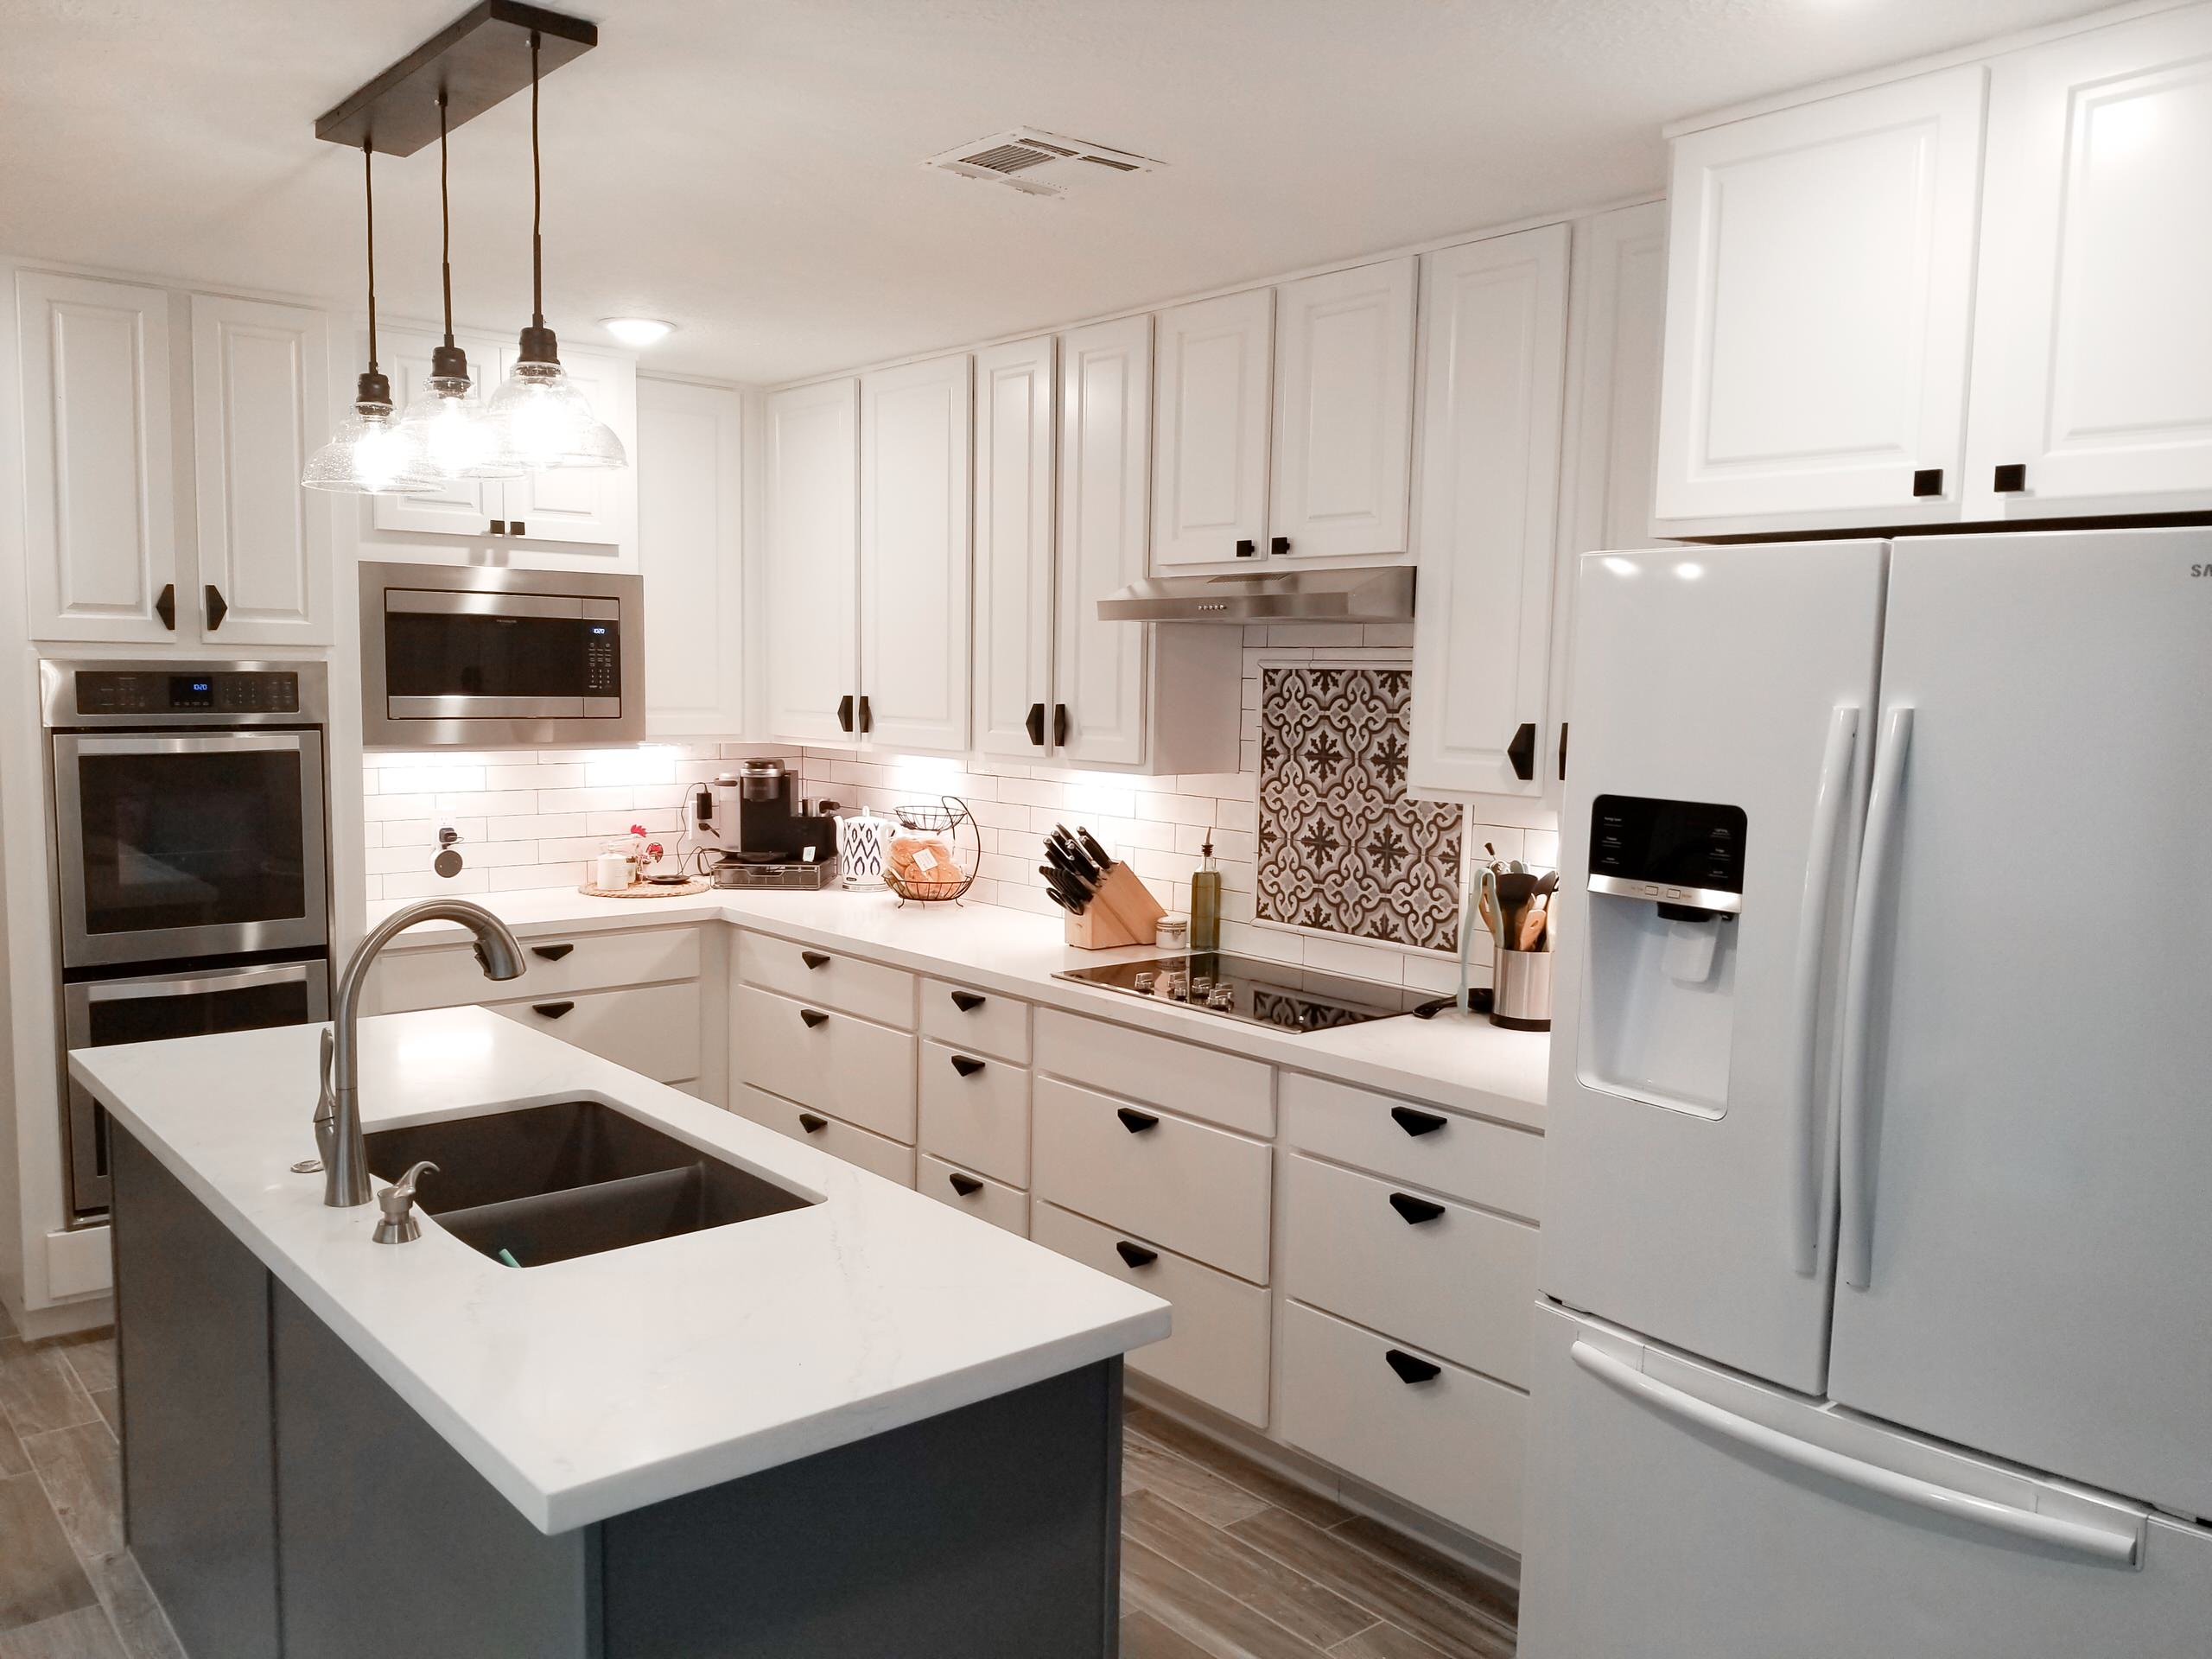 Lake Sherwood Kitchen Renovation